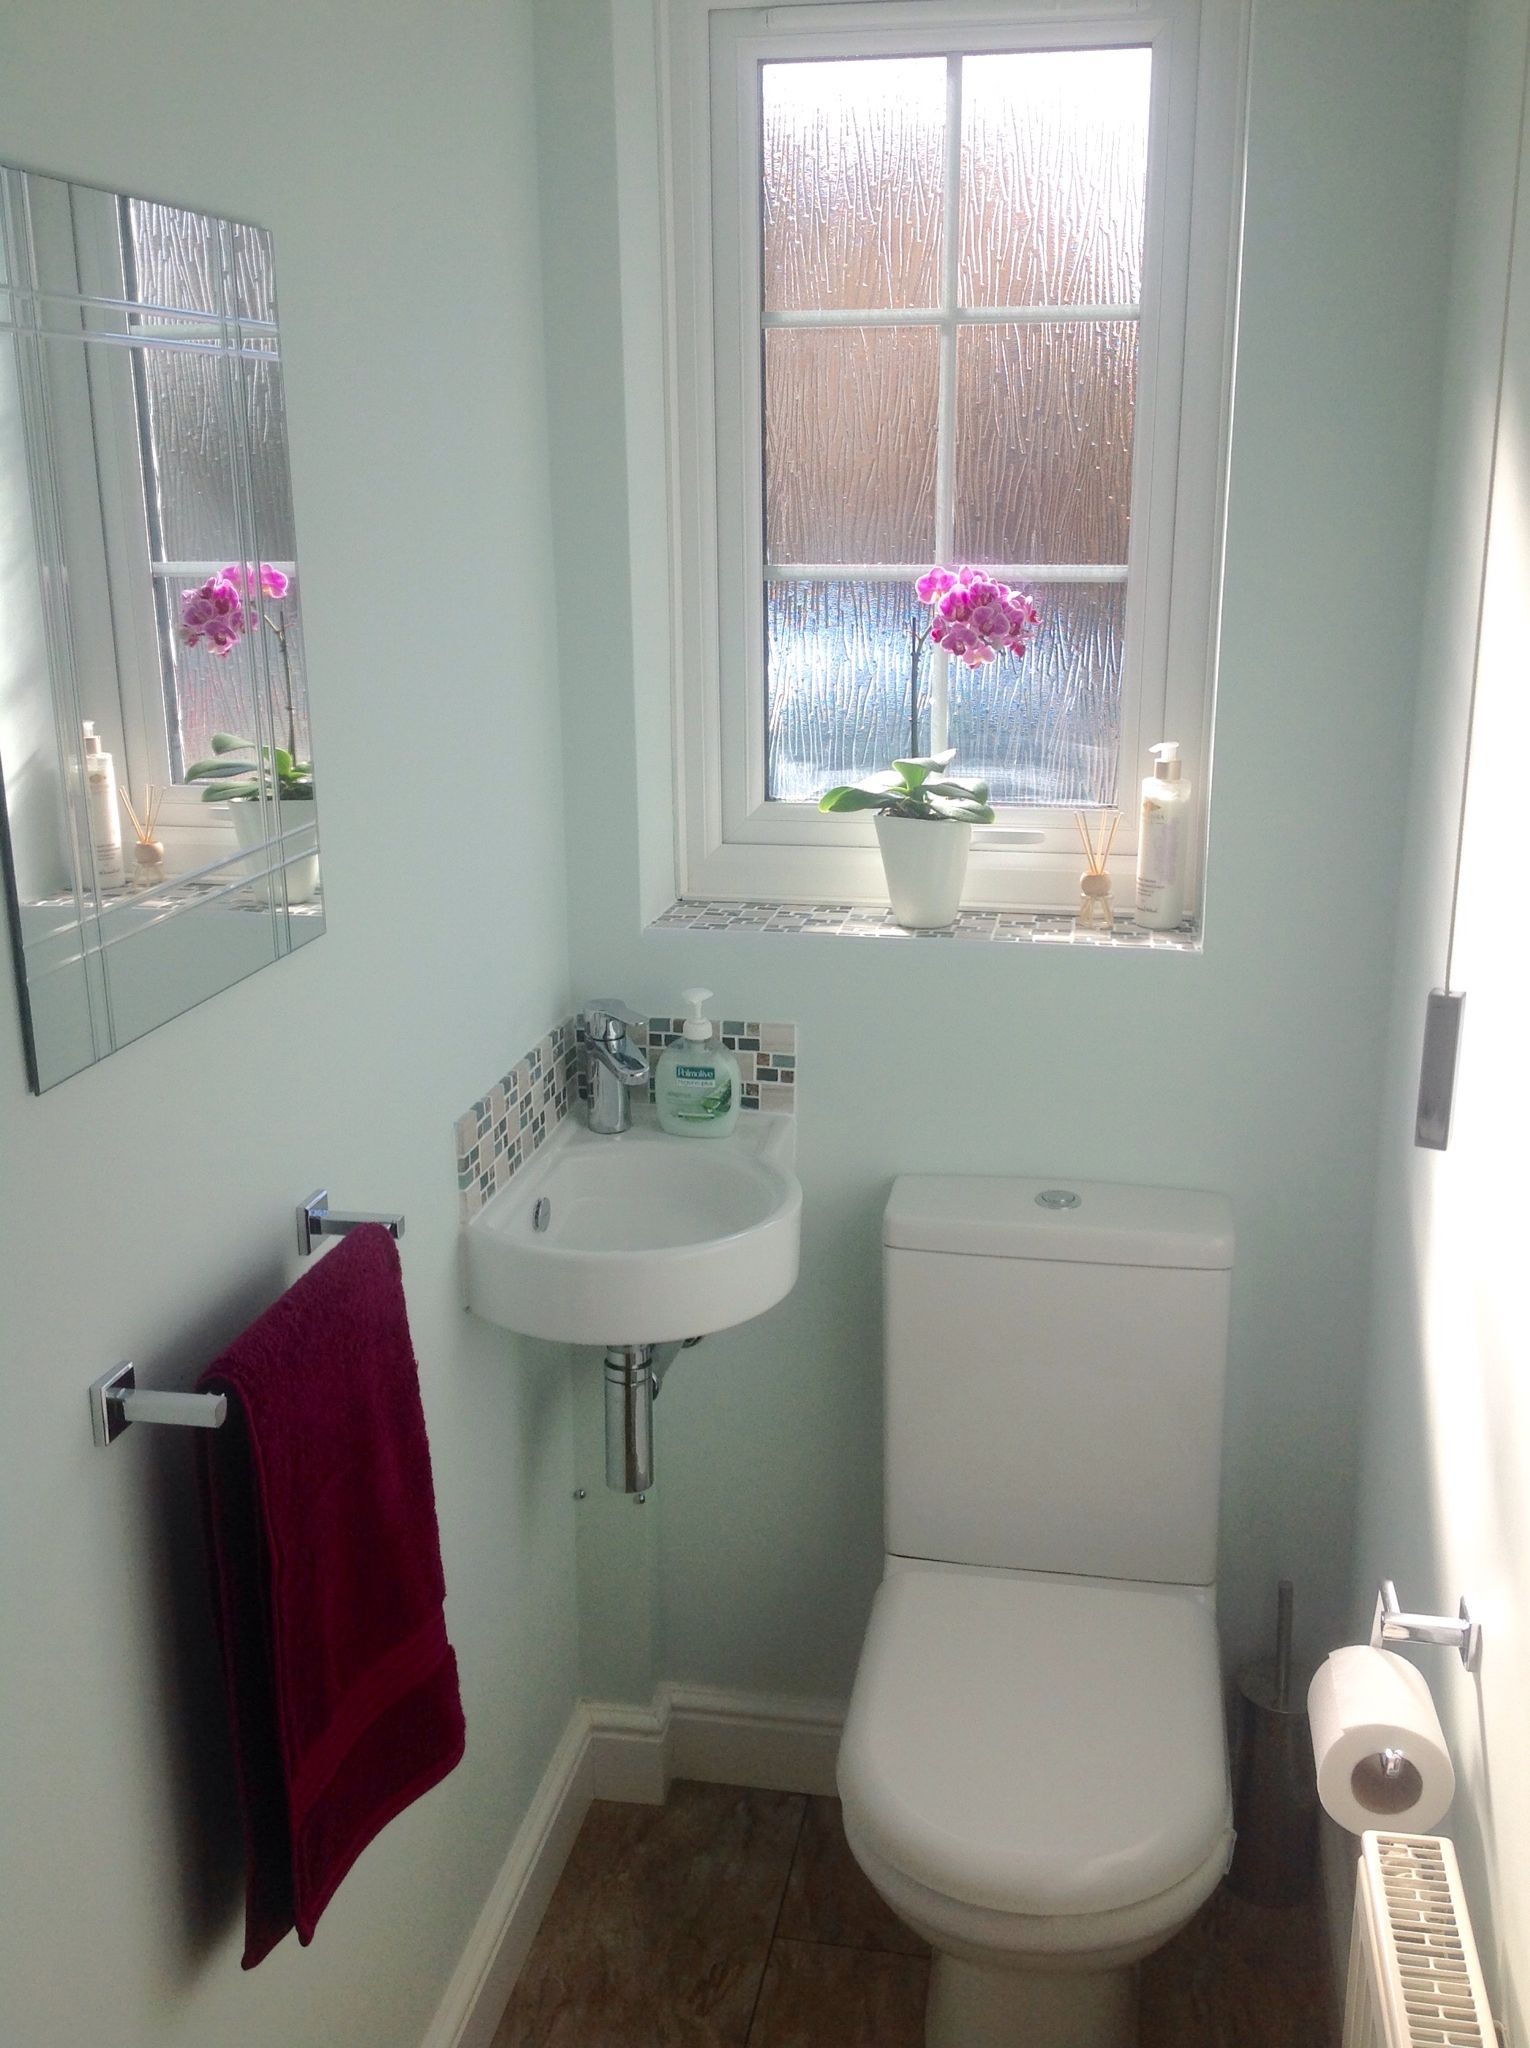 Small Cloakroom Toilet Downstairs Loo